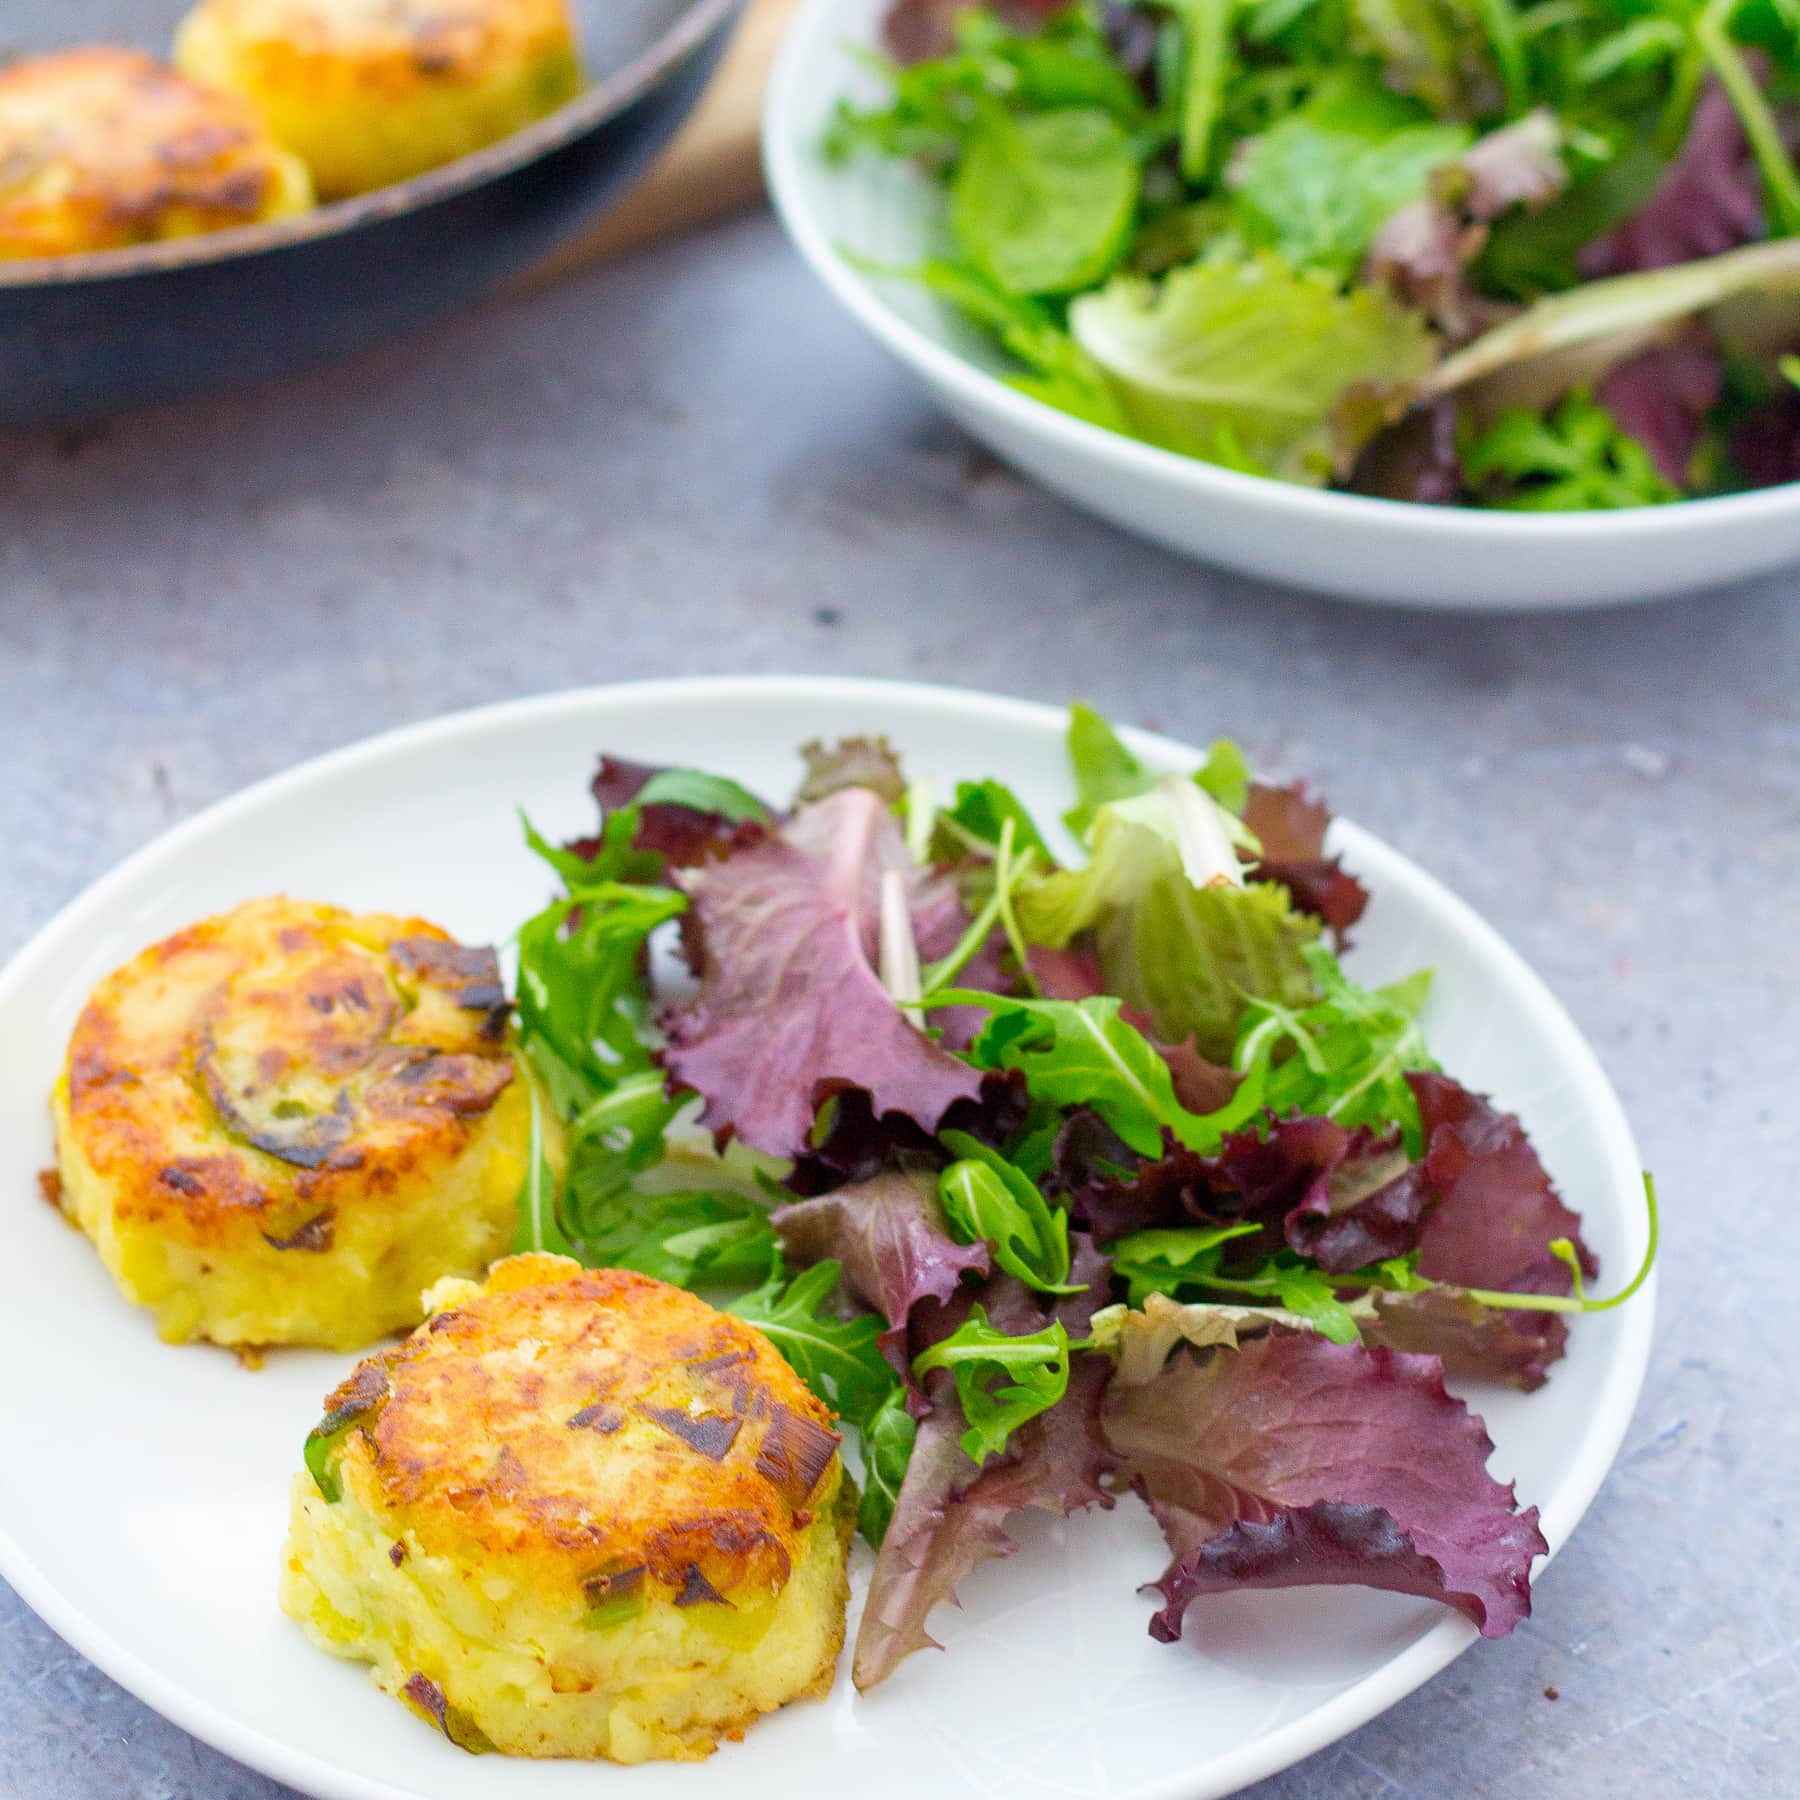 Leftover Sprouts Bubble and Squeak Cakes